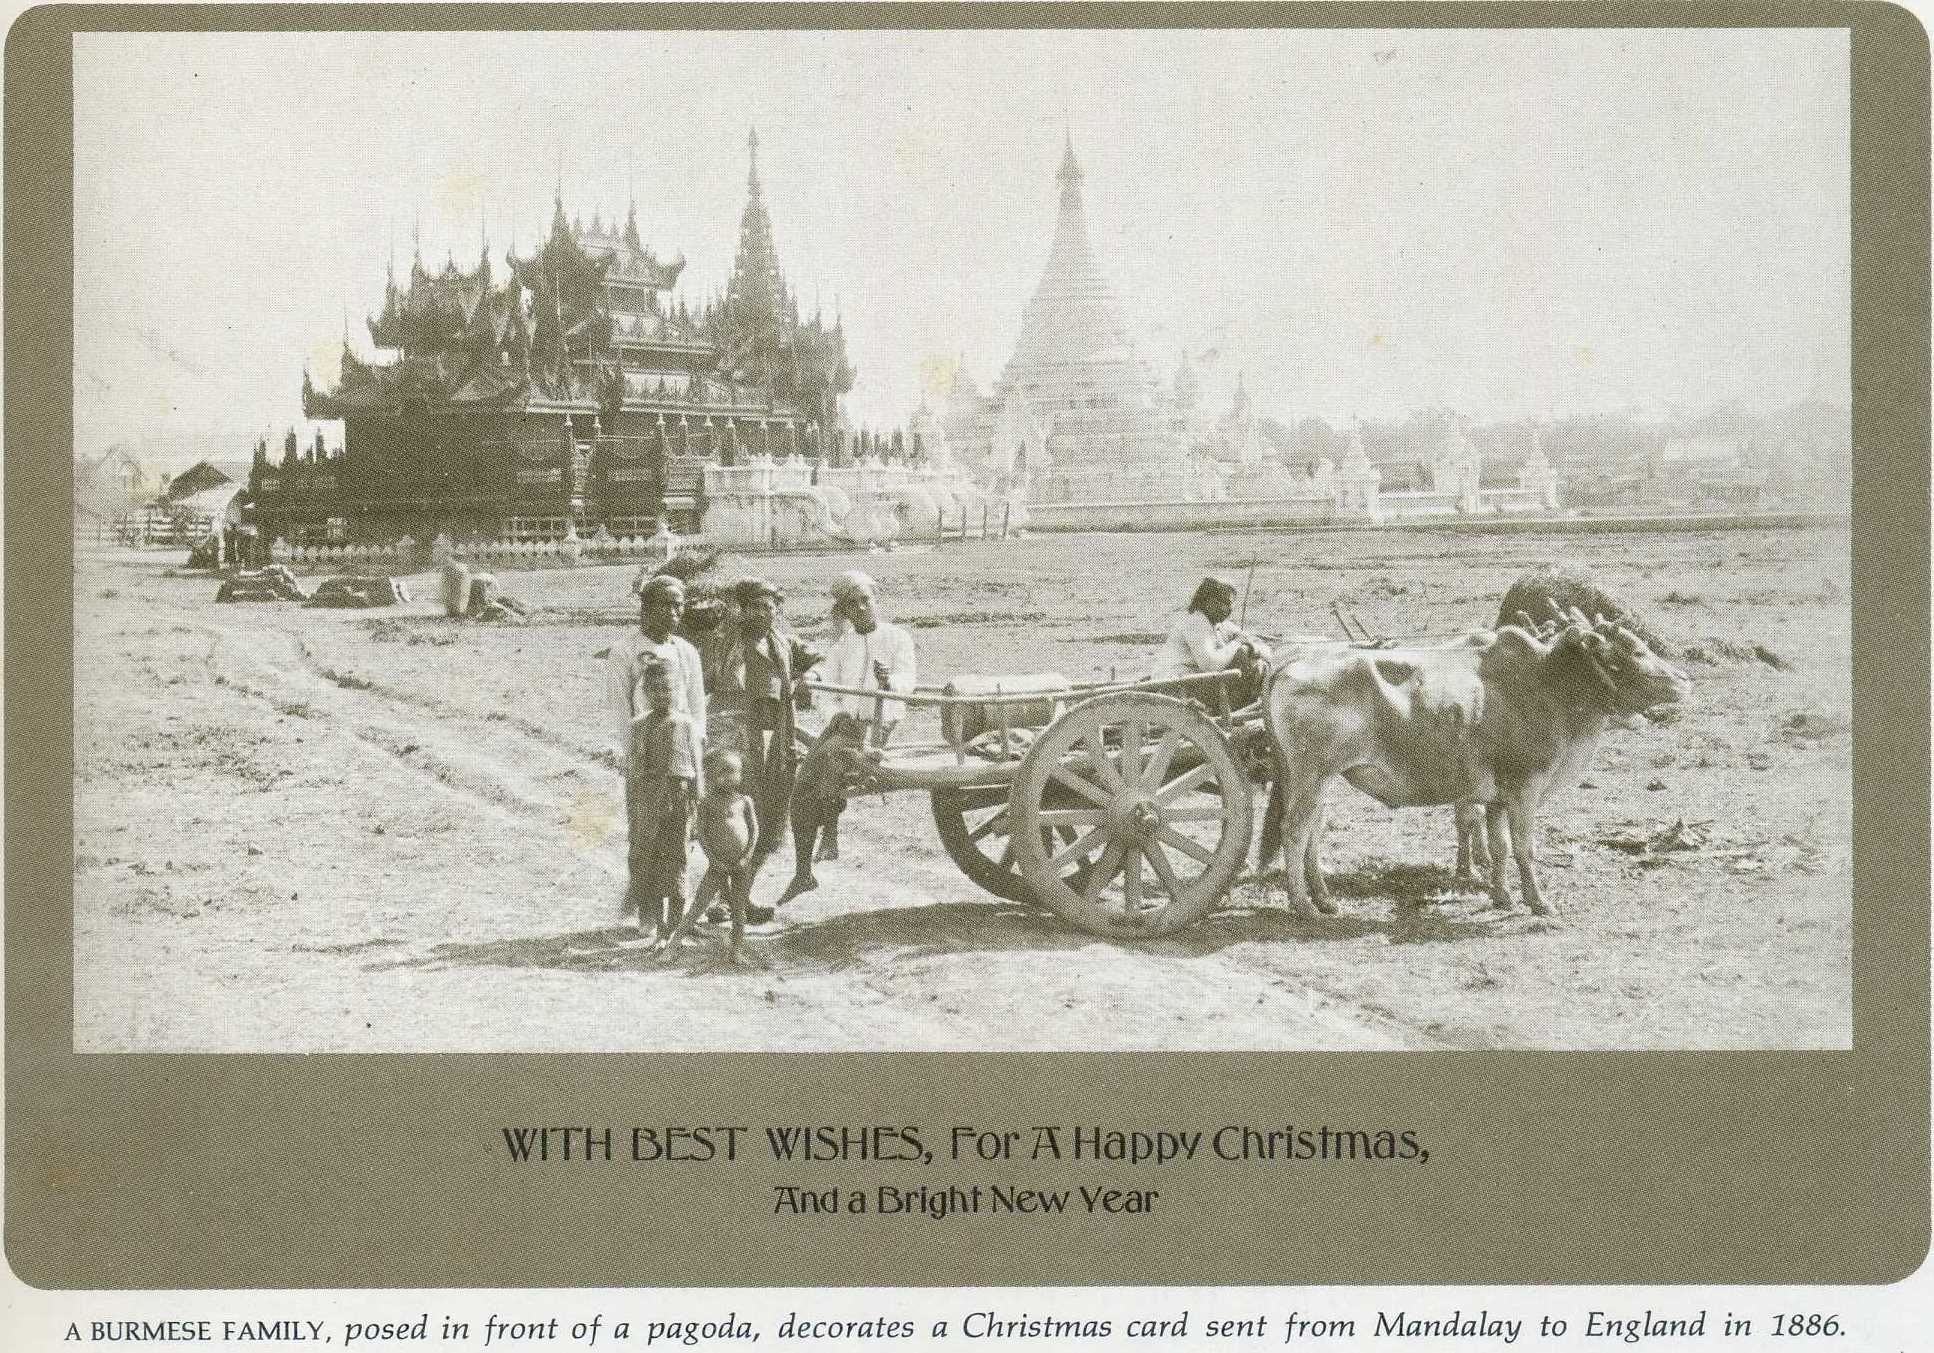 Mandalay Christmas card